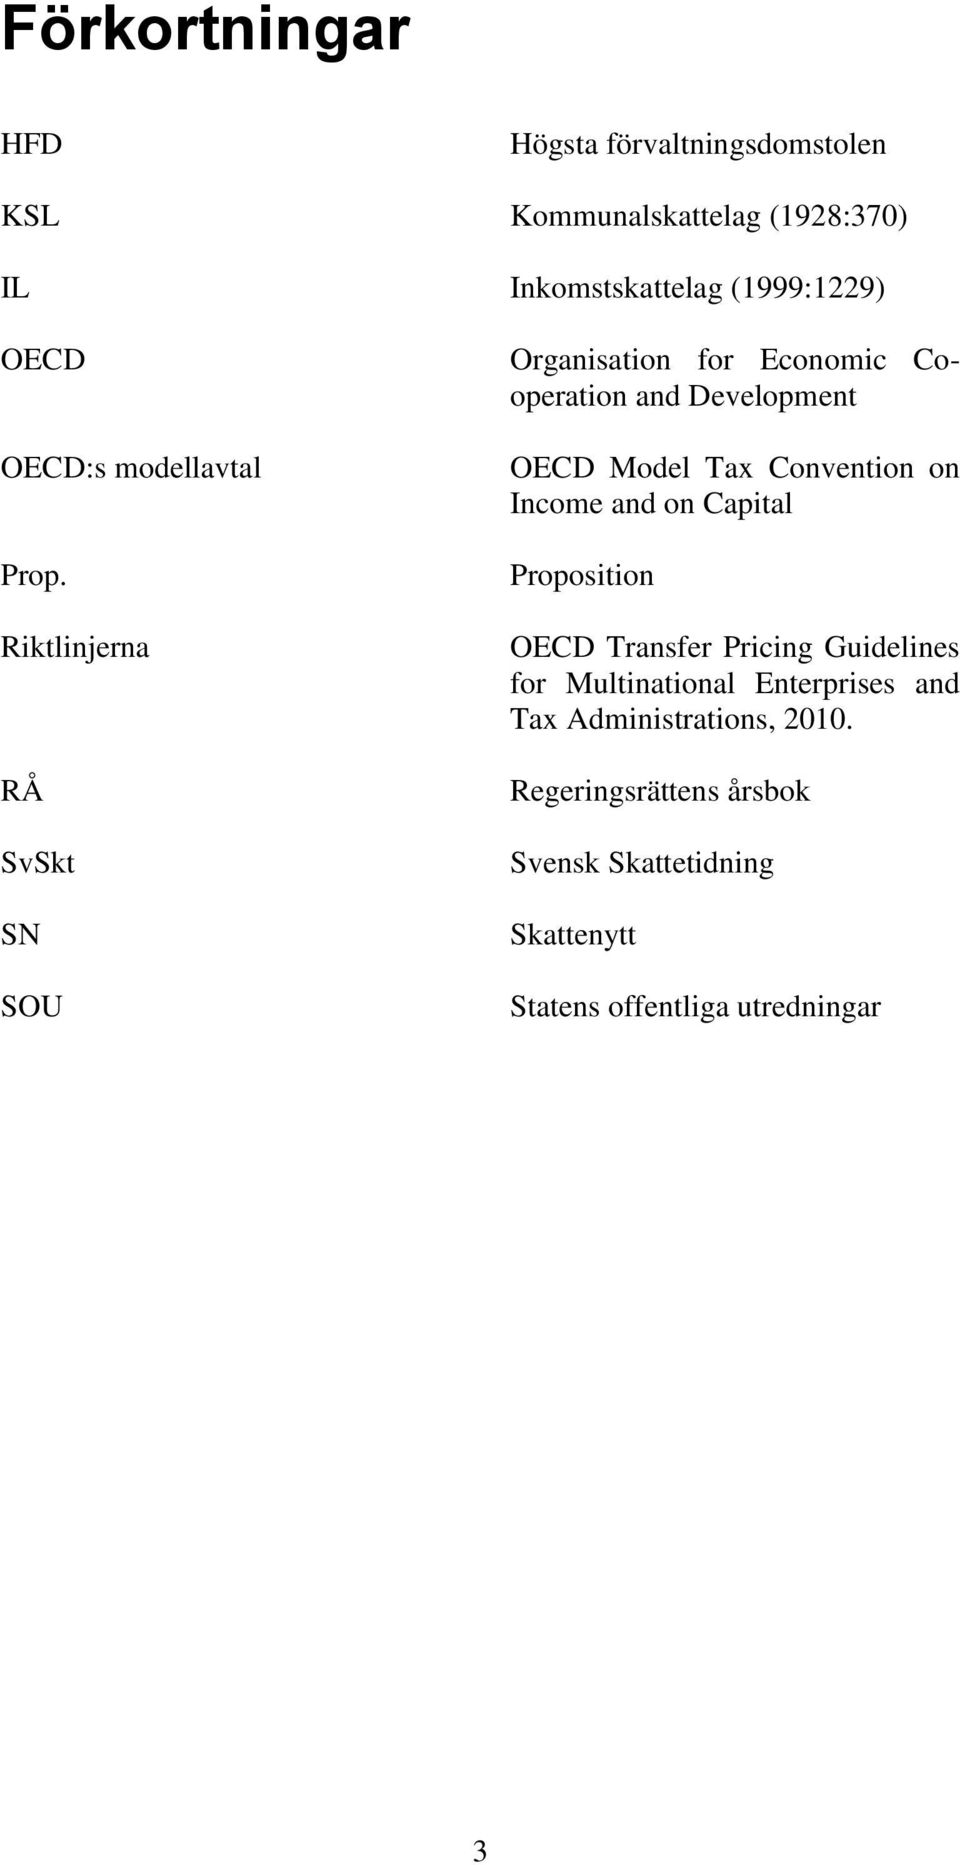 Riktlinjerna RÅ SvSkt SN SOU Organisation for Economic Cooperation and Development OECD Model Tax Convention on